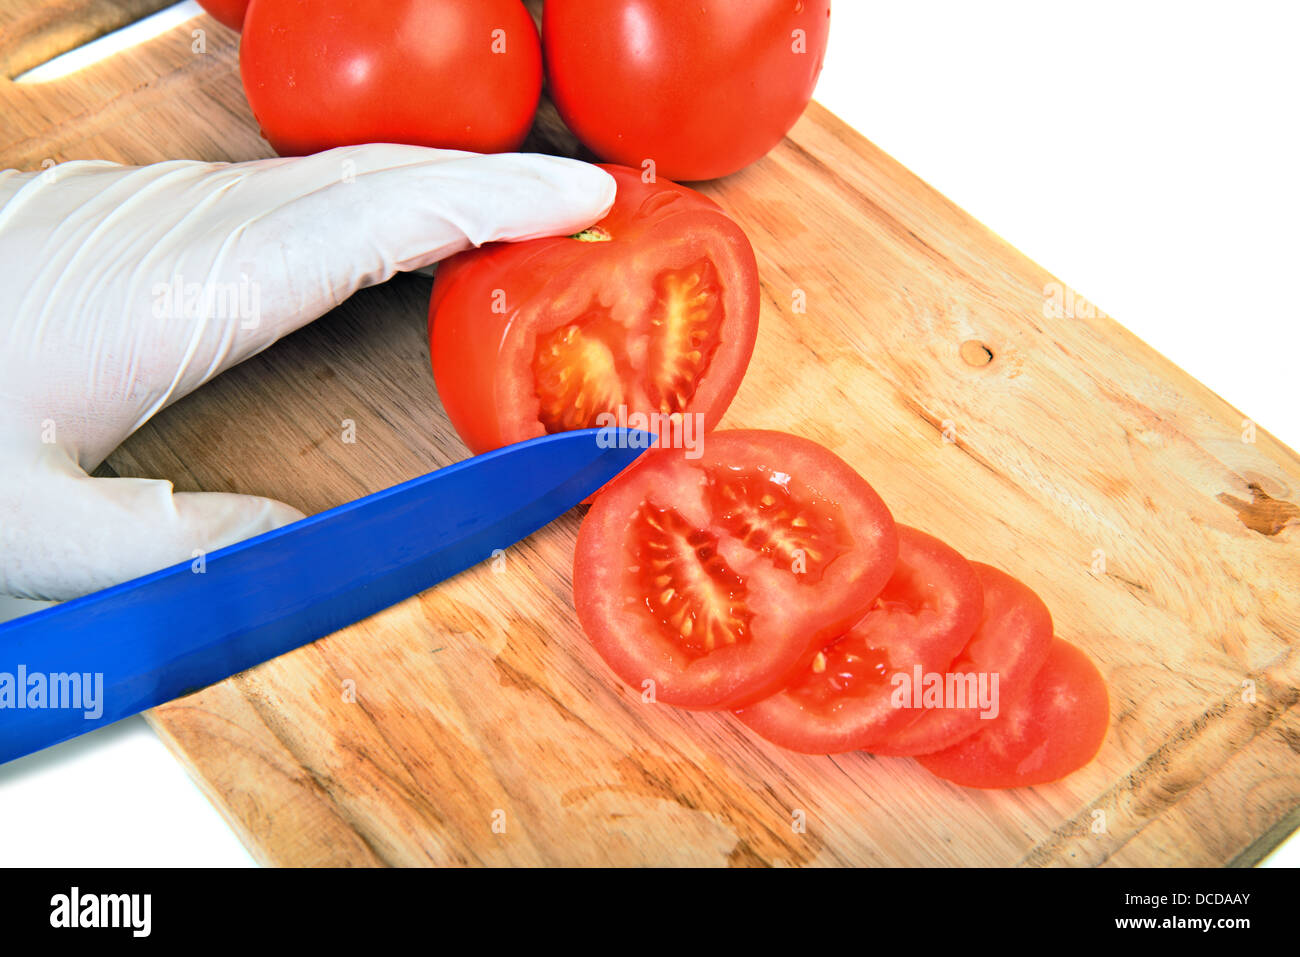 Slicing tomato on cutting board with ceramic knife over white - Stock Image